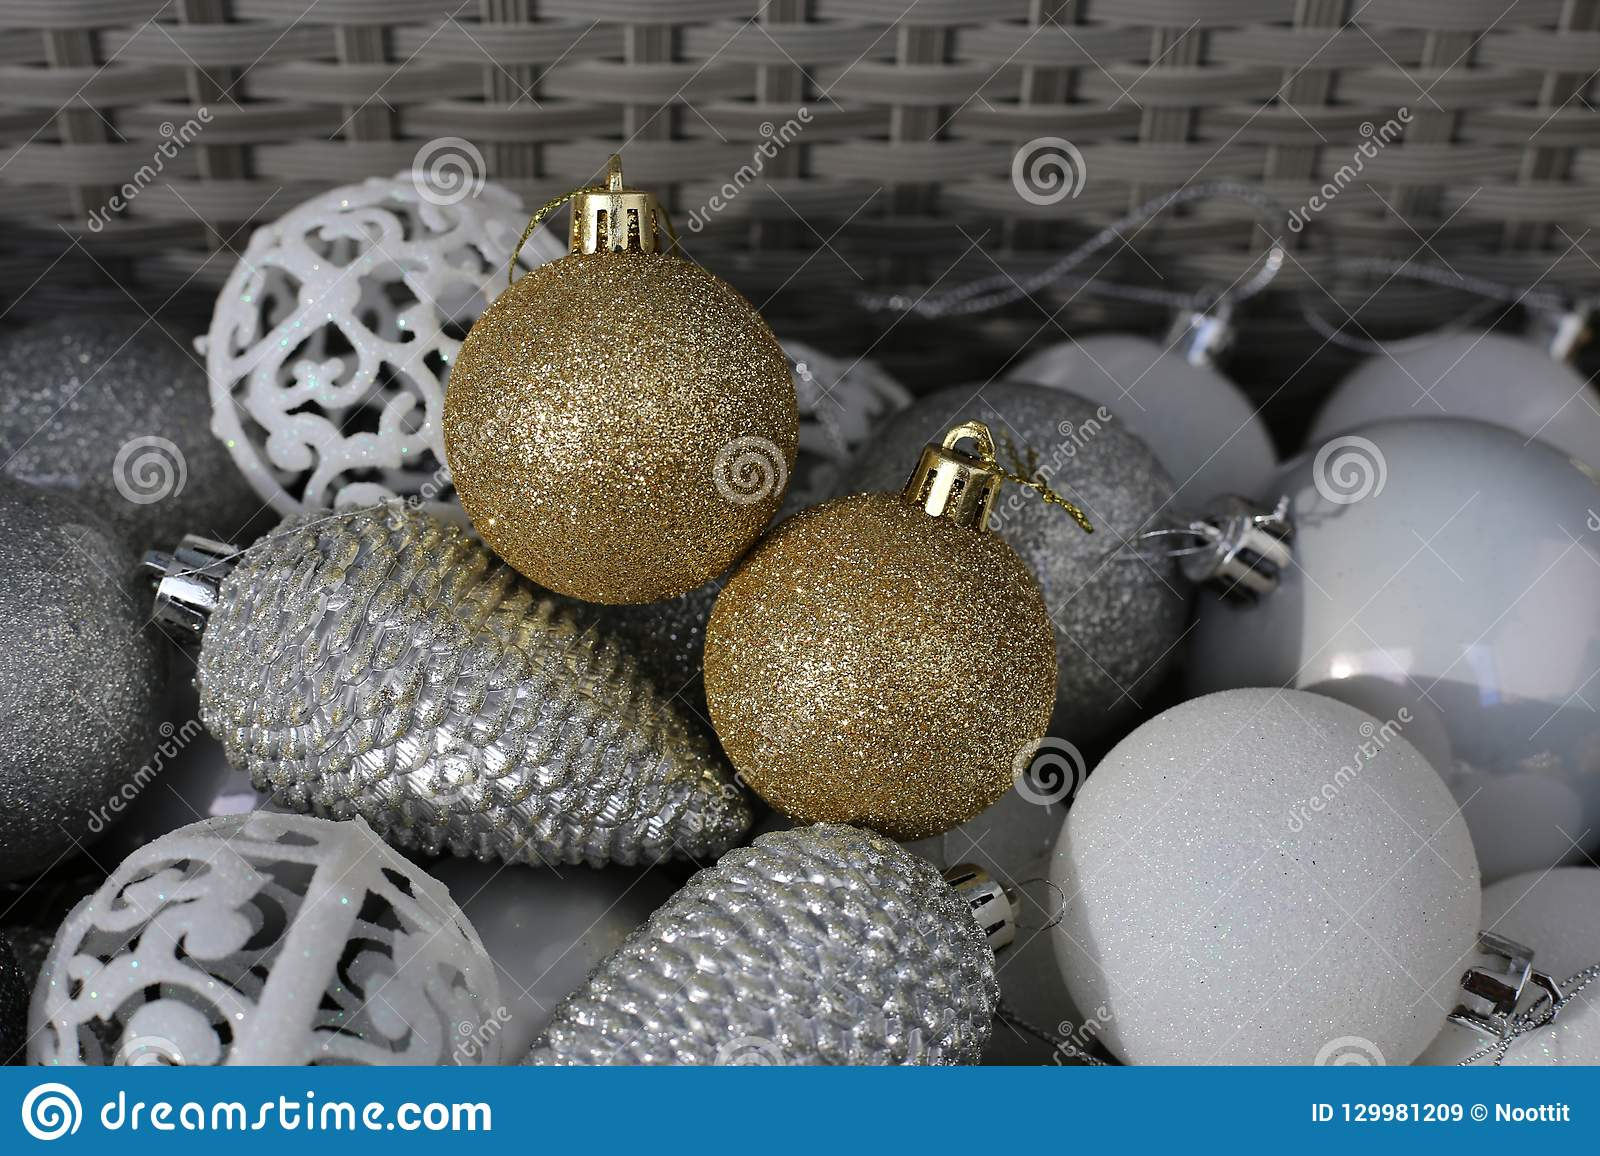 Gold, White, Silver And Gray Colored Christmas Ornaments ...